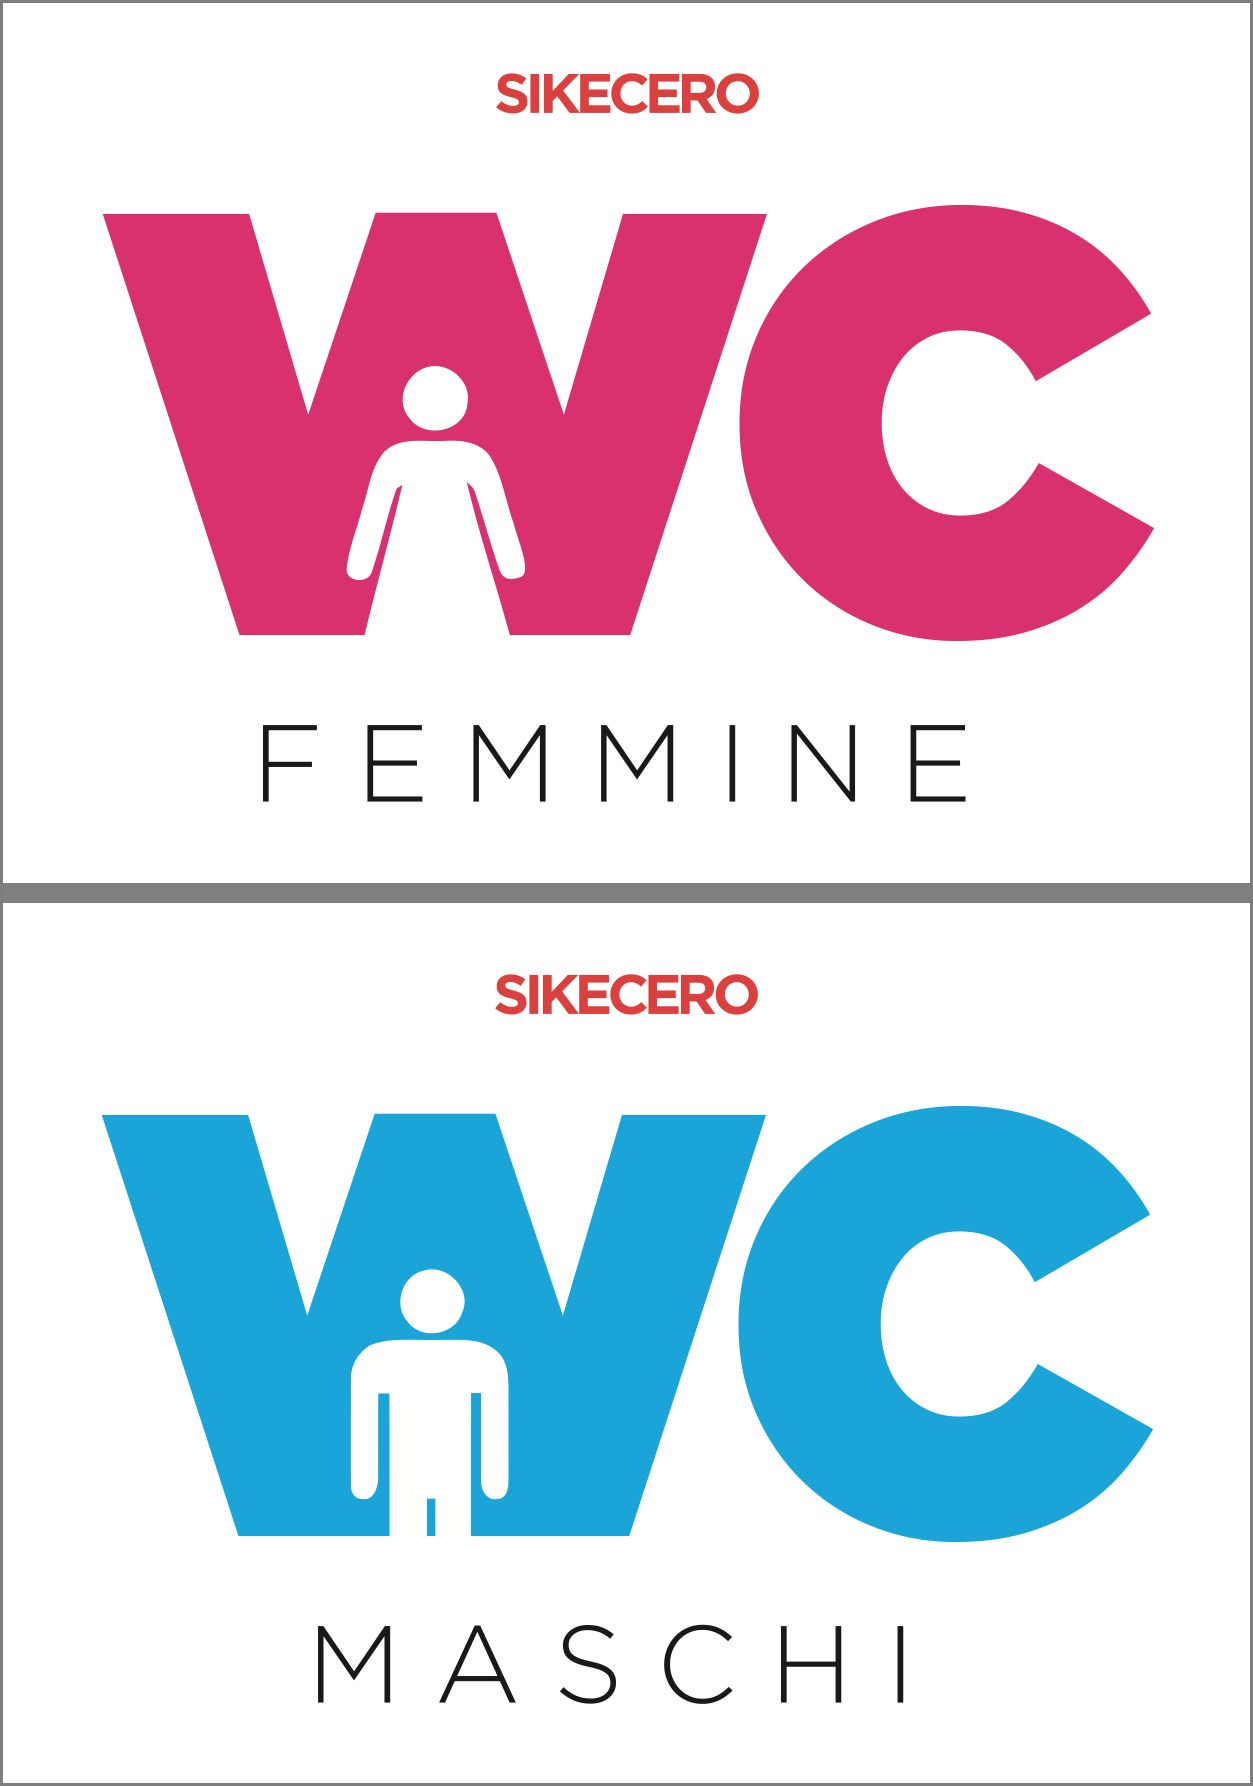 Sikecero_wc